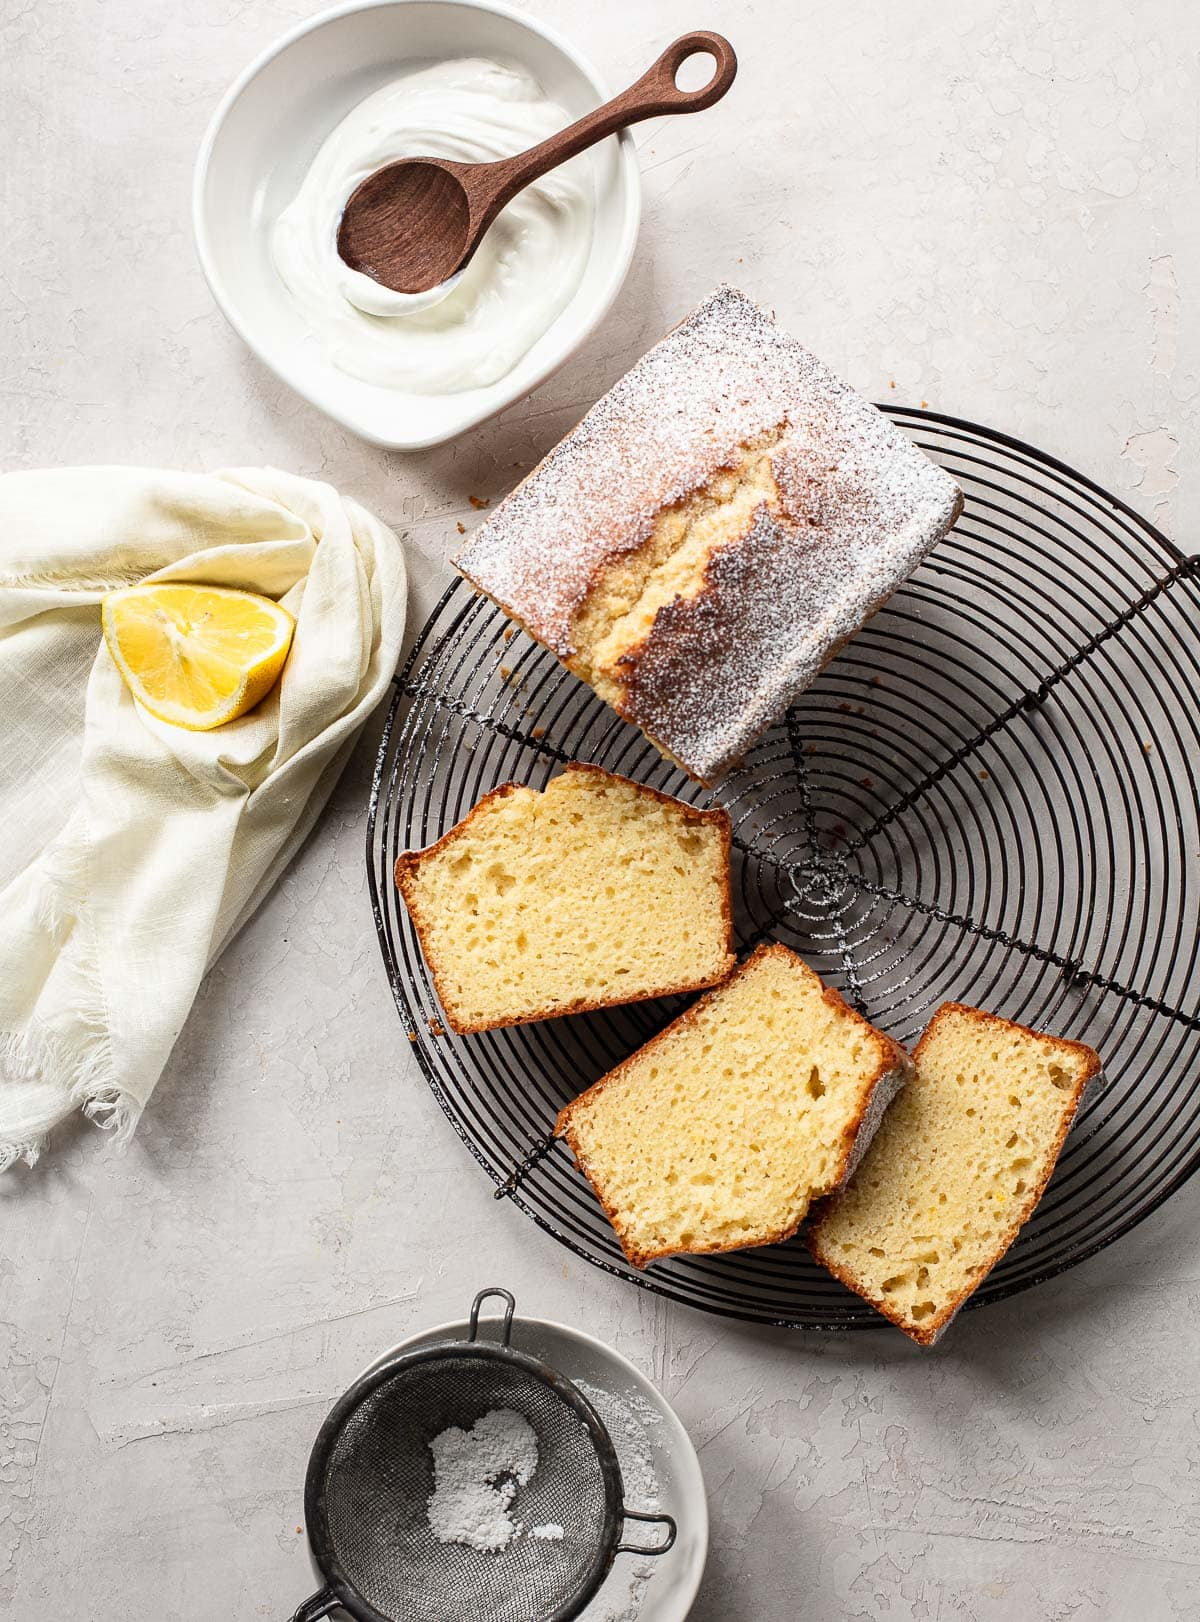 Classic French Lemon Yogurt Cake